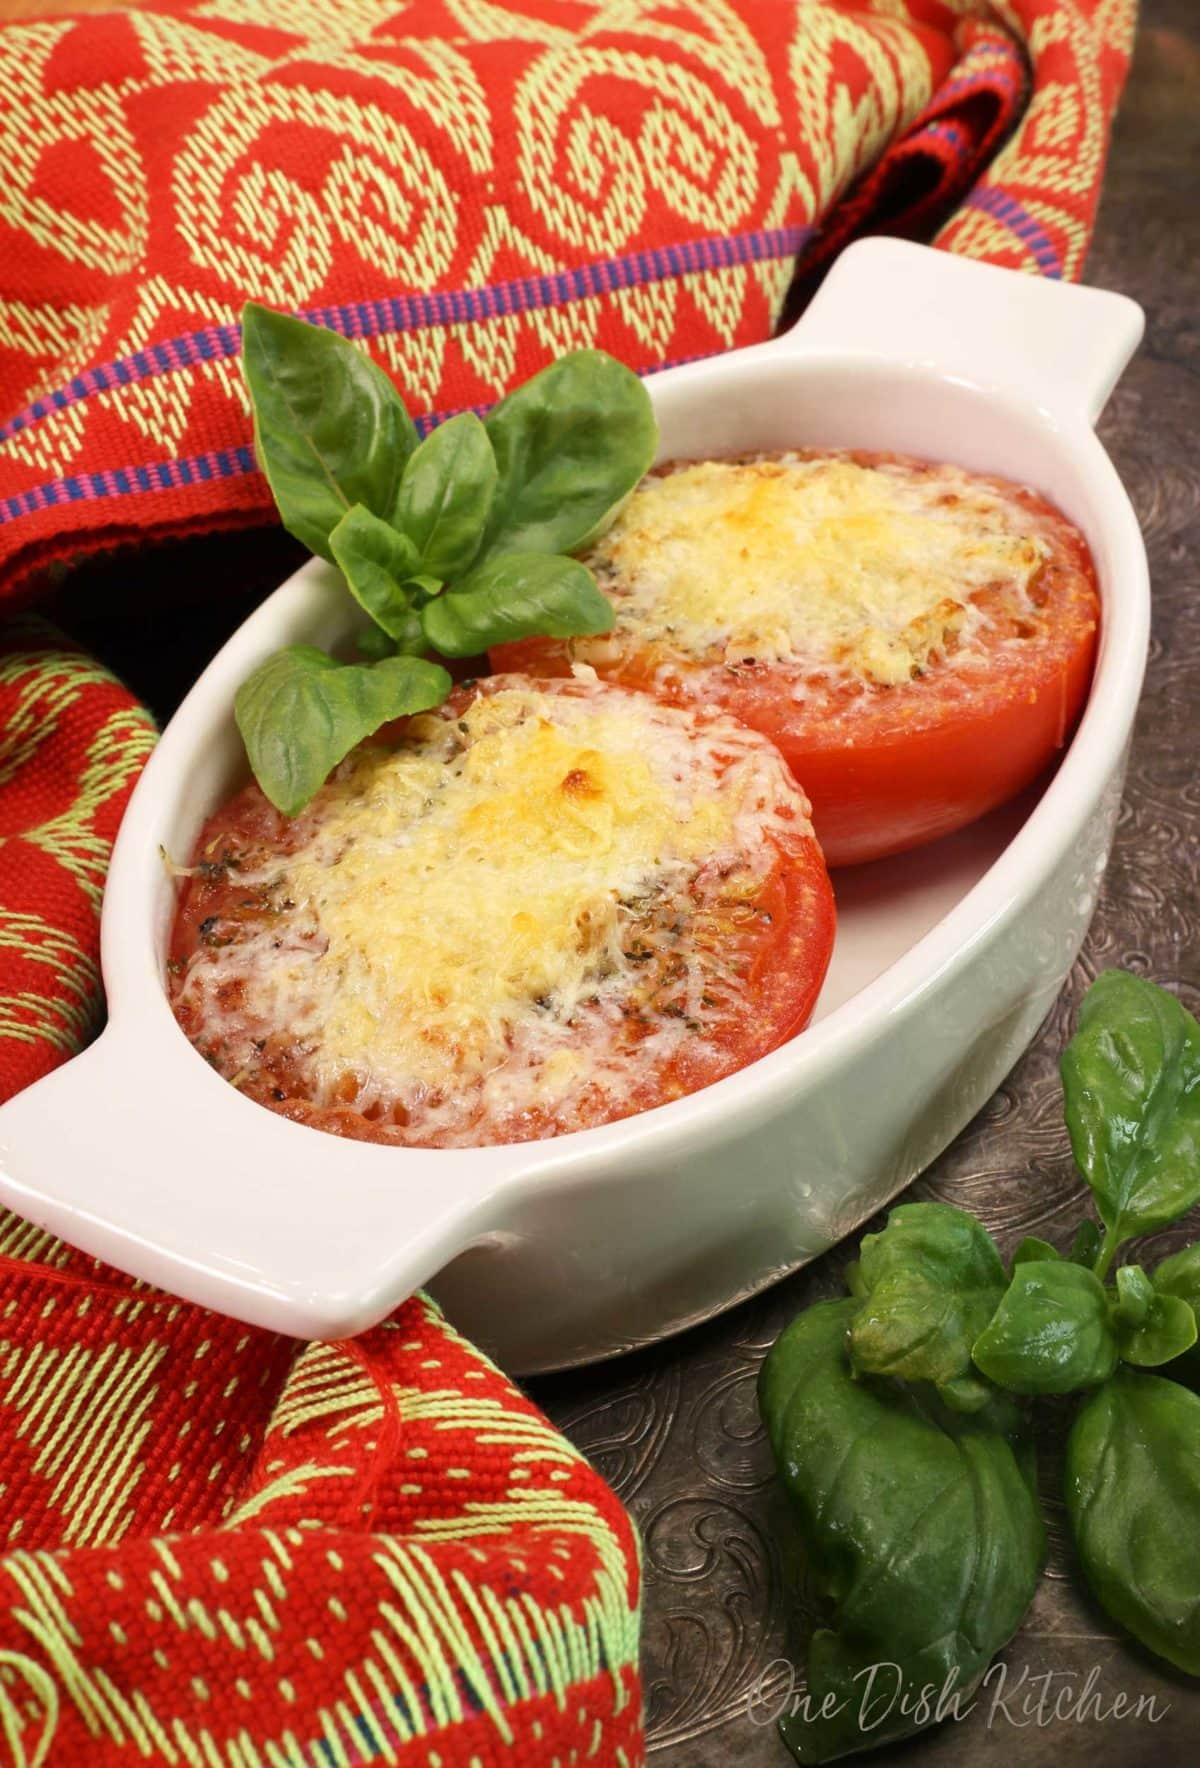 two broiled tomatoes in a white oval dish topped with melted parmesan cheese and fresh basil